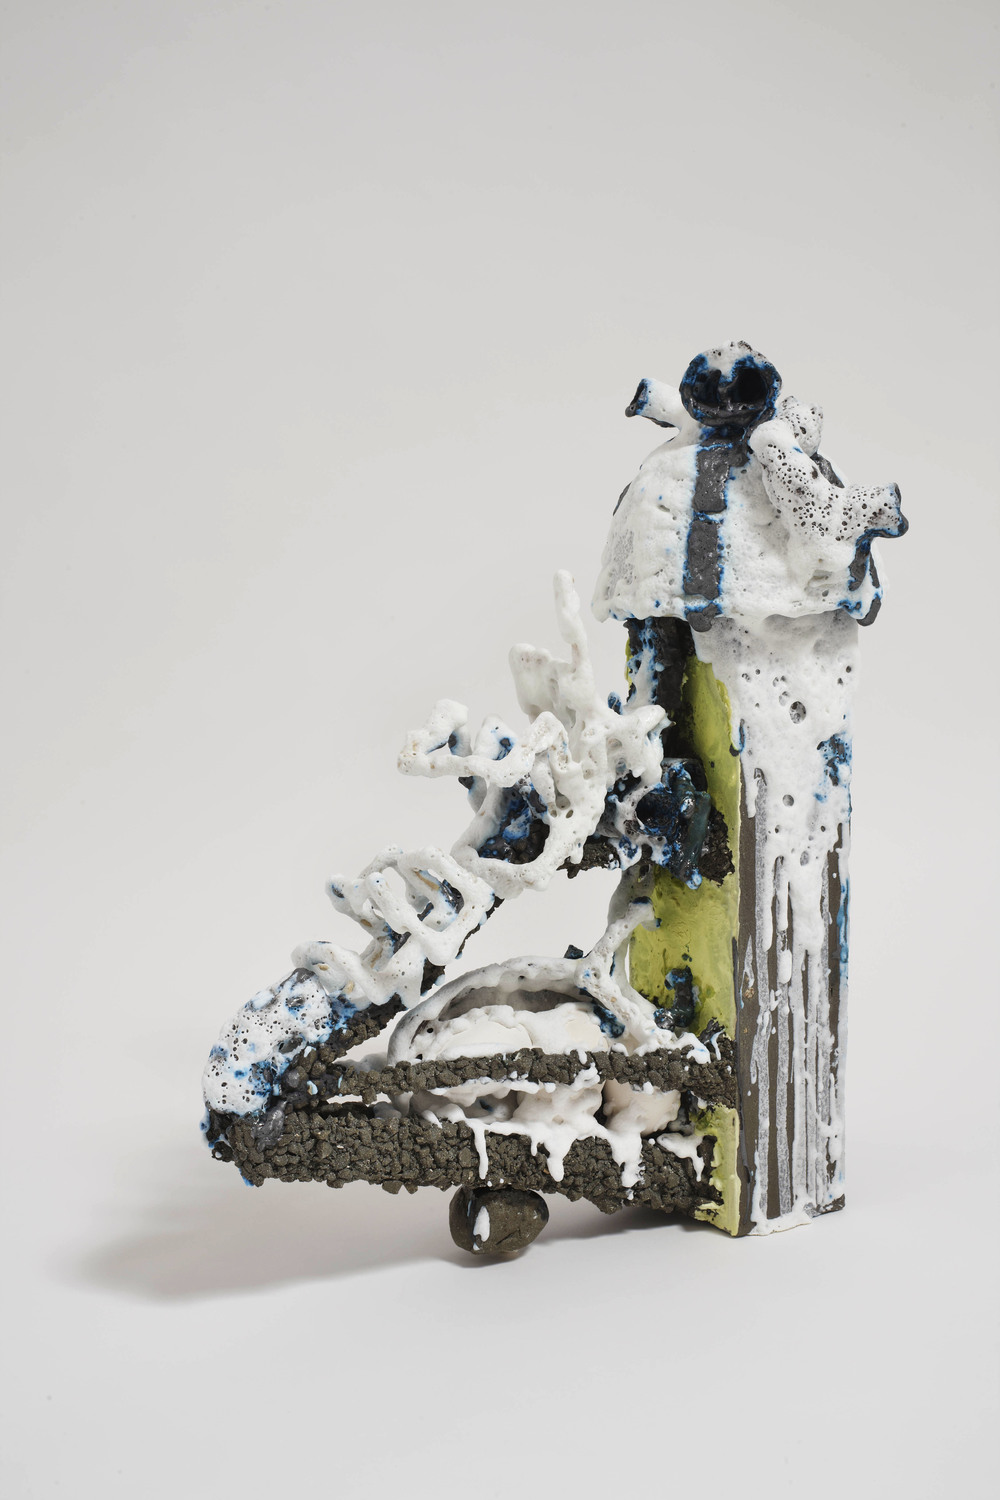 Paul Krause   Untitled (Vertical Slide) , 2012  Ceramic  27 x 20 x 12 inches